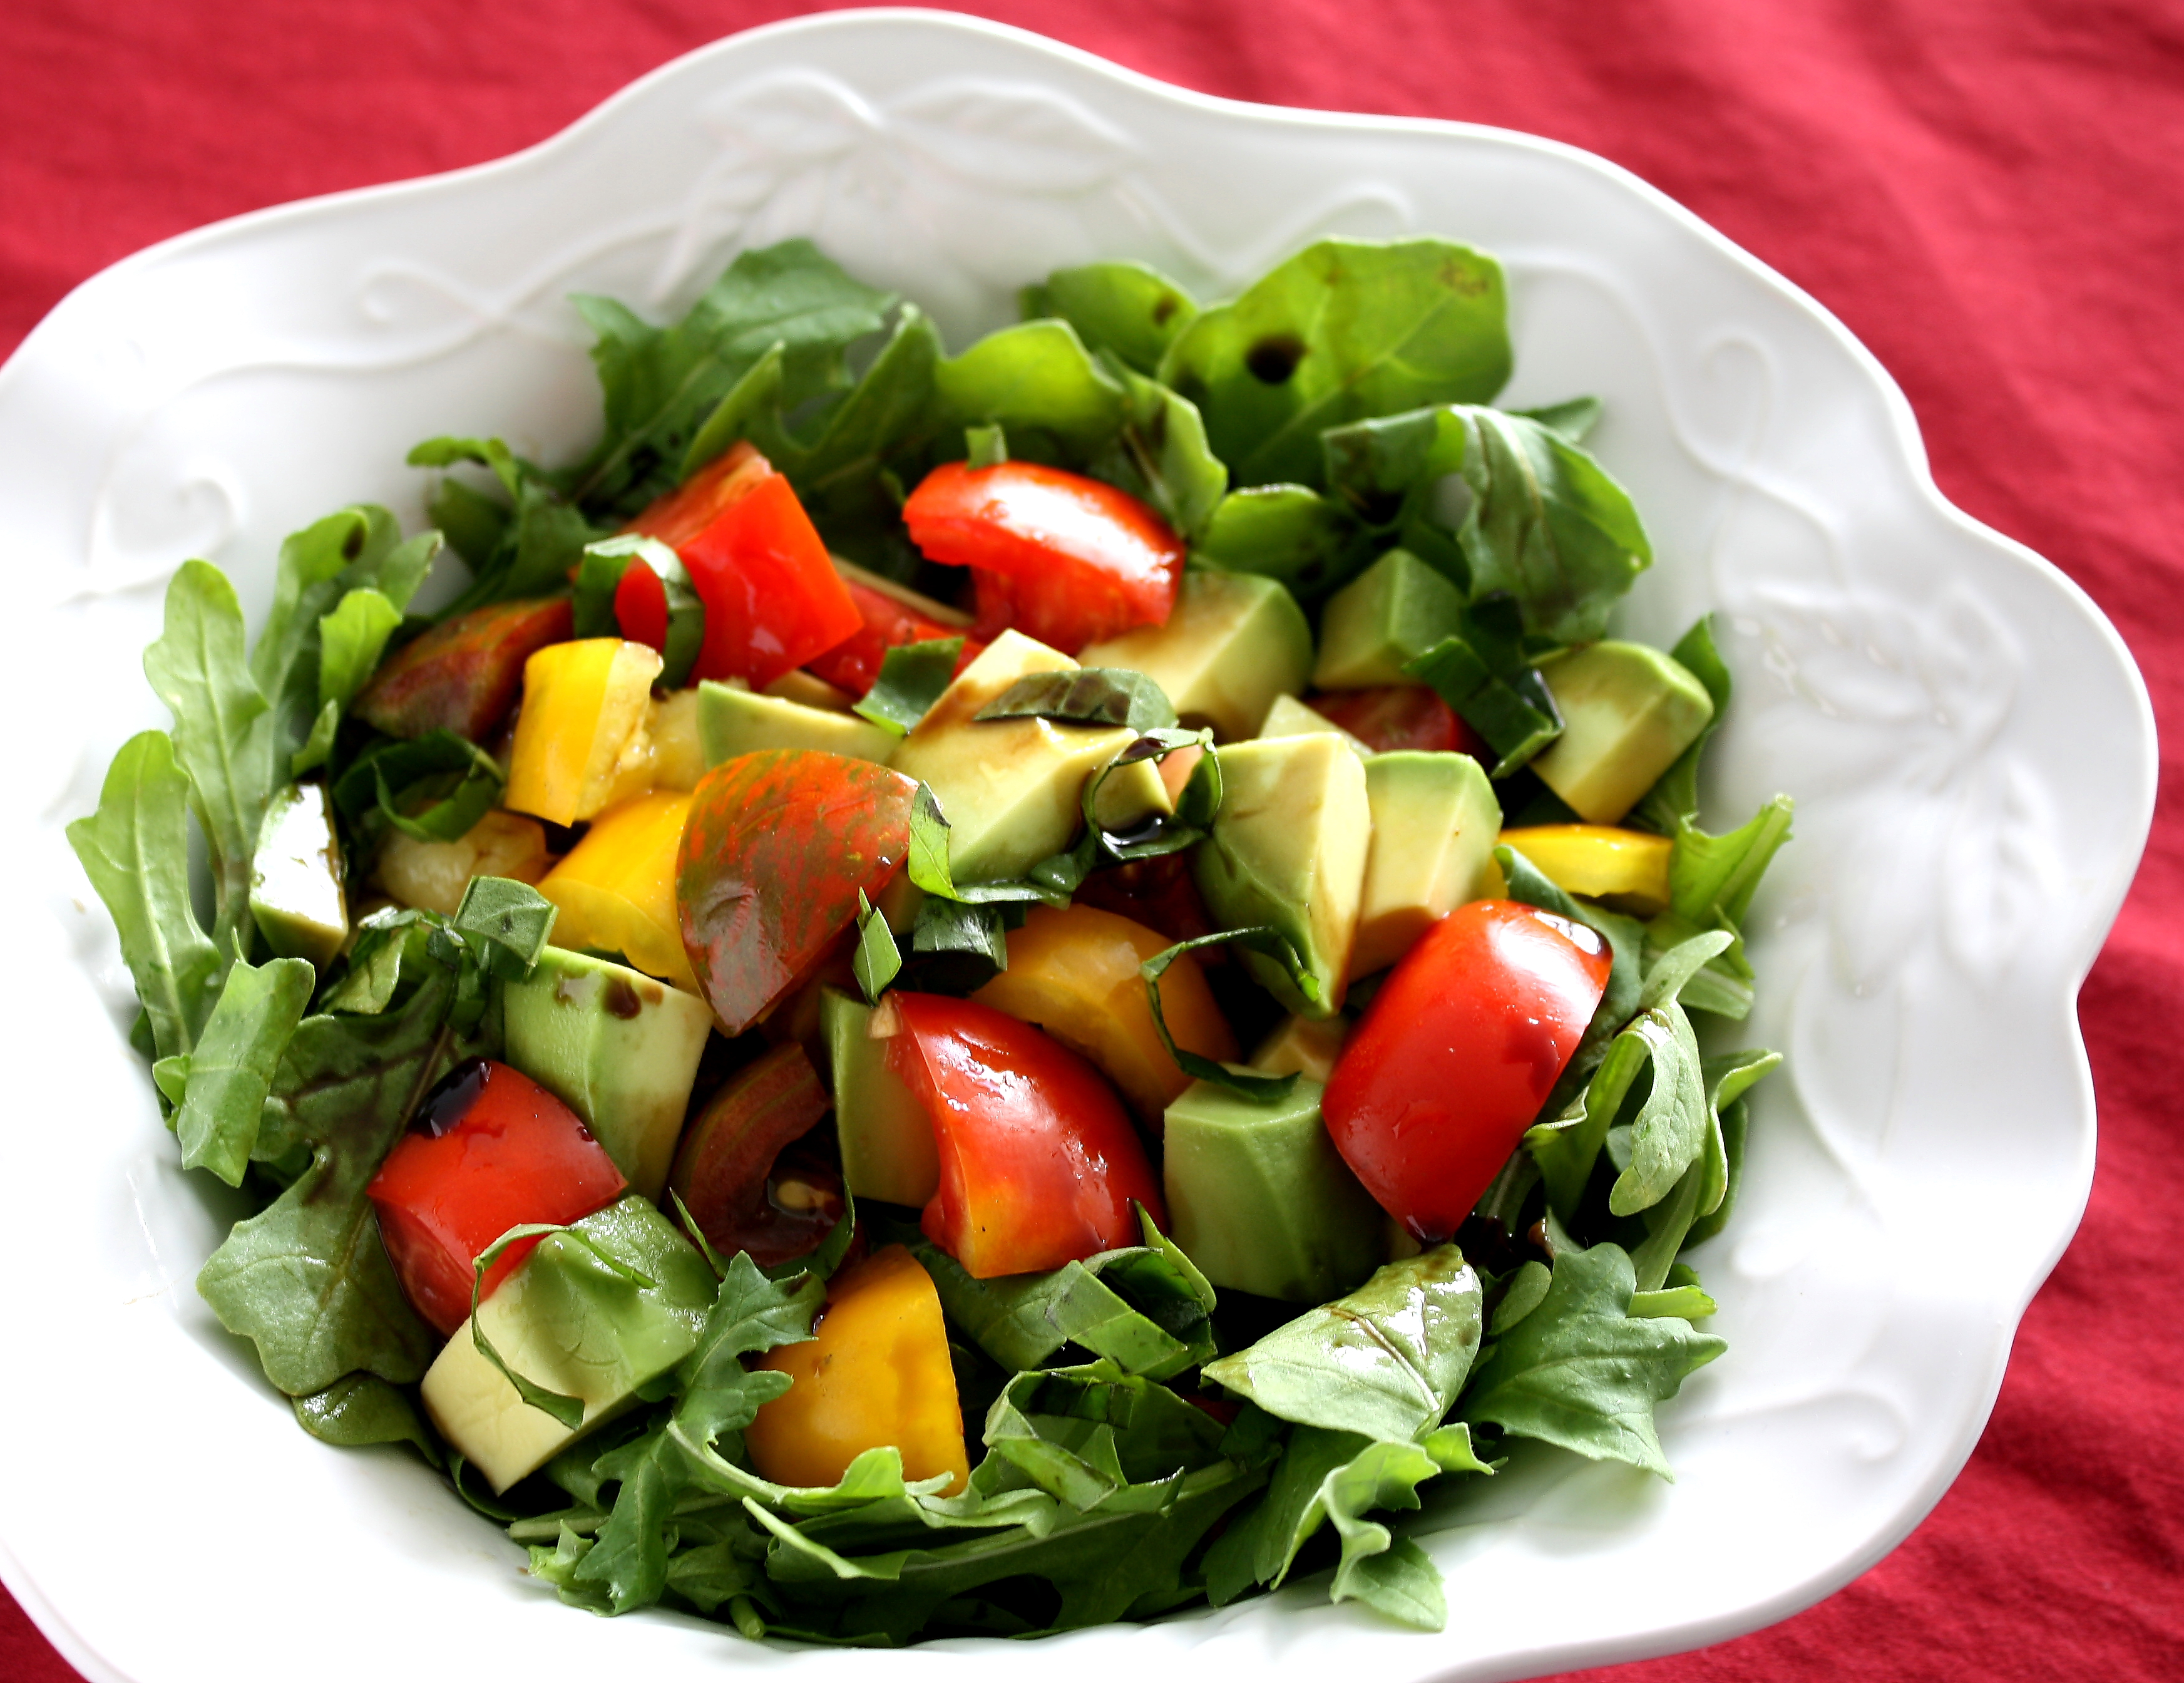 Heirloom Tomato Salad0005 1024x788 Dont Ruin A Healthy Salad With ...